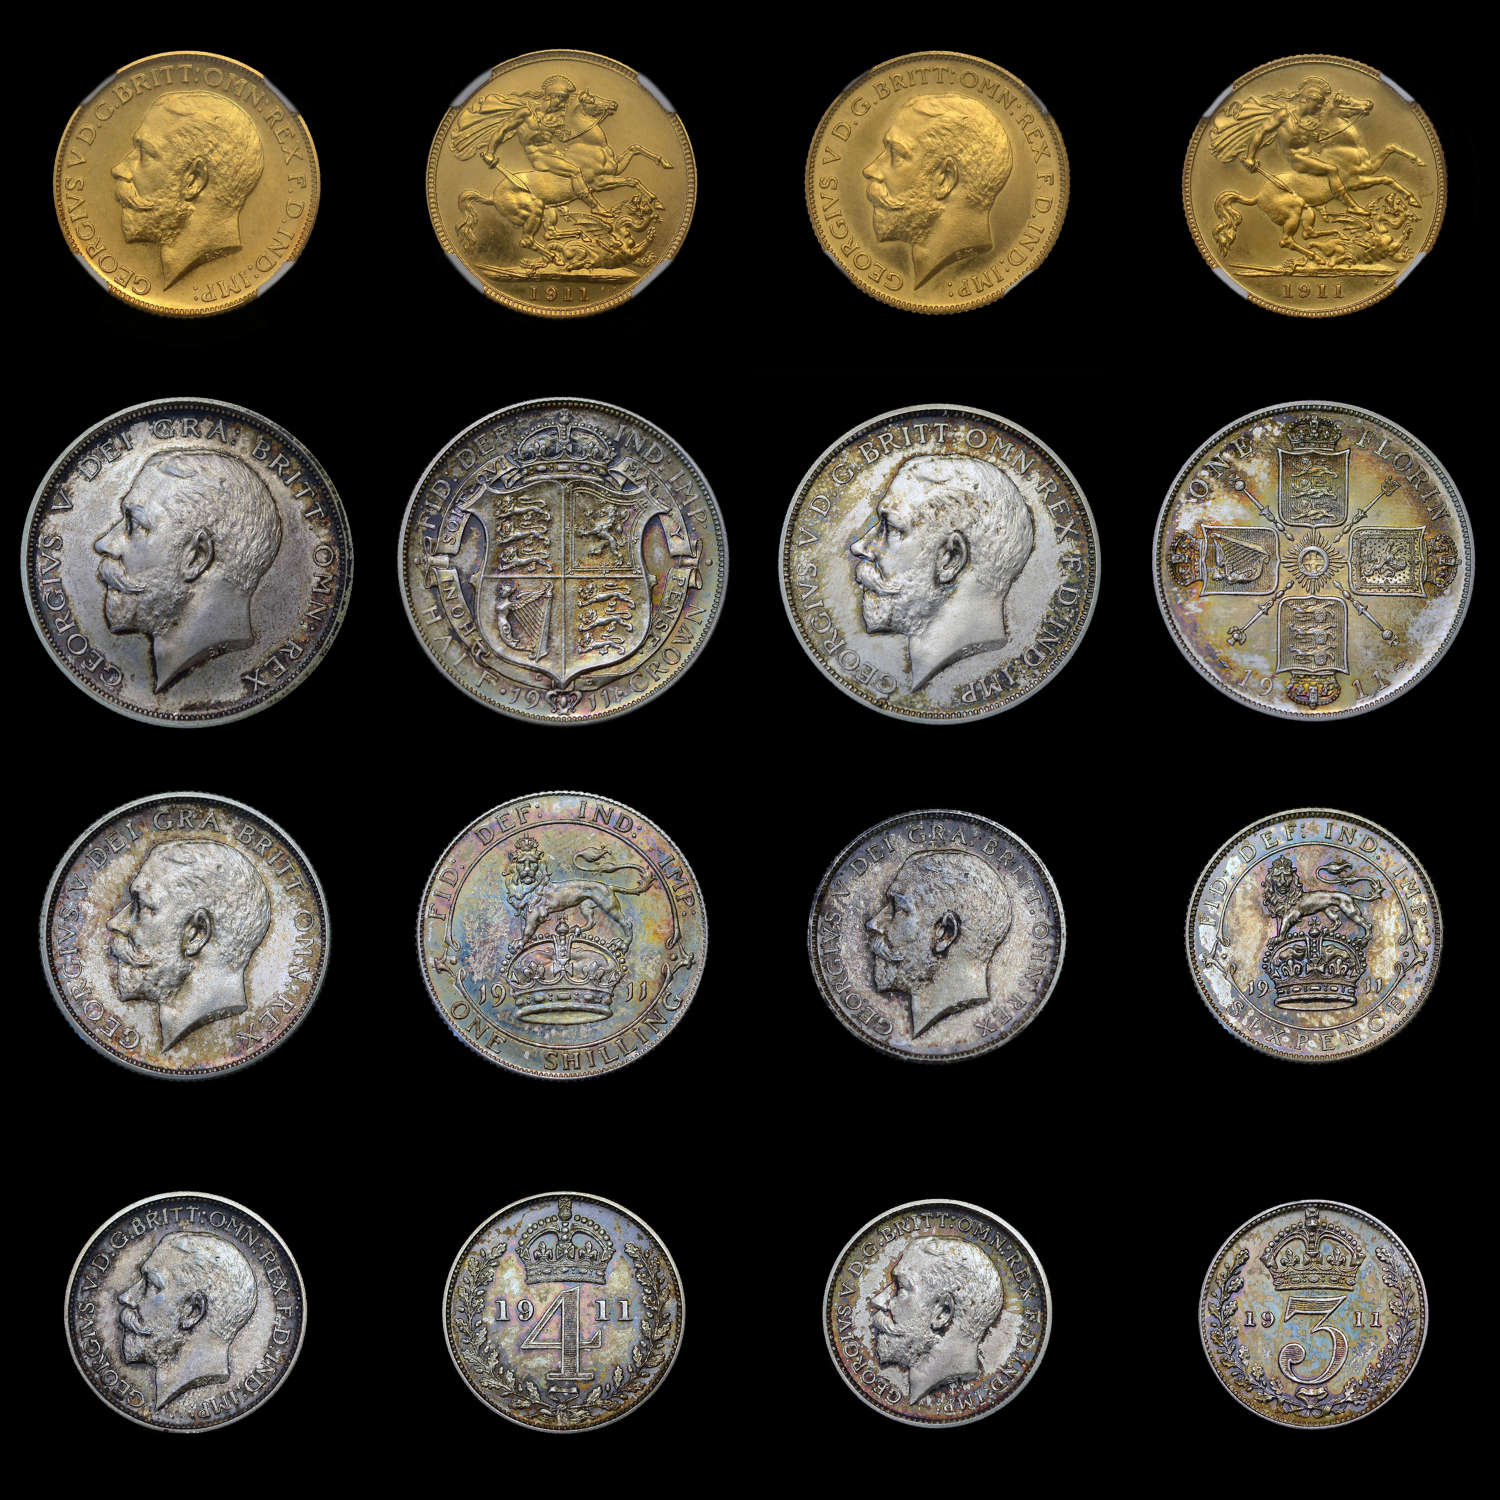 GEORGE V, 1911 GOLD AND SILVER PROOF SET, SOVEREIGN TO 1D